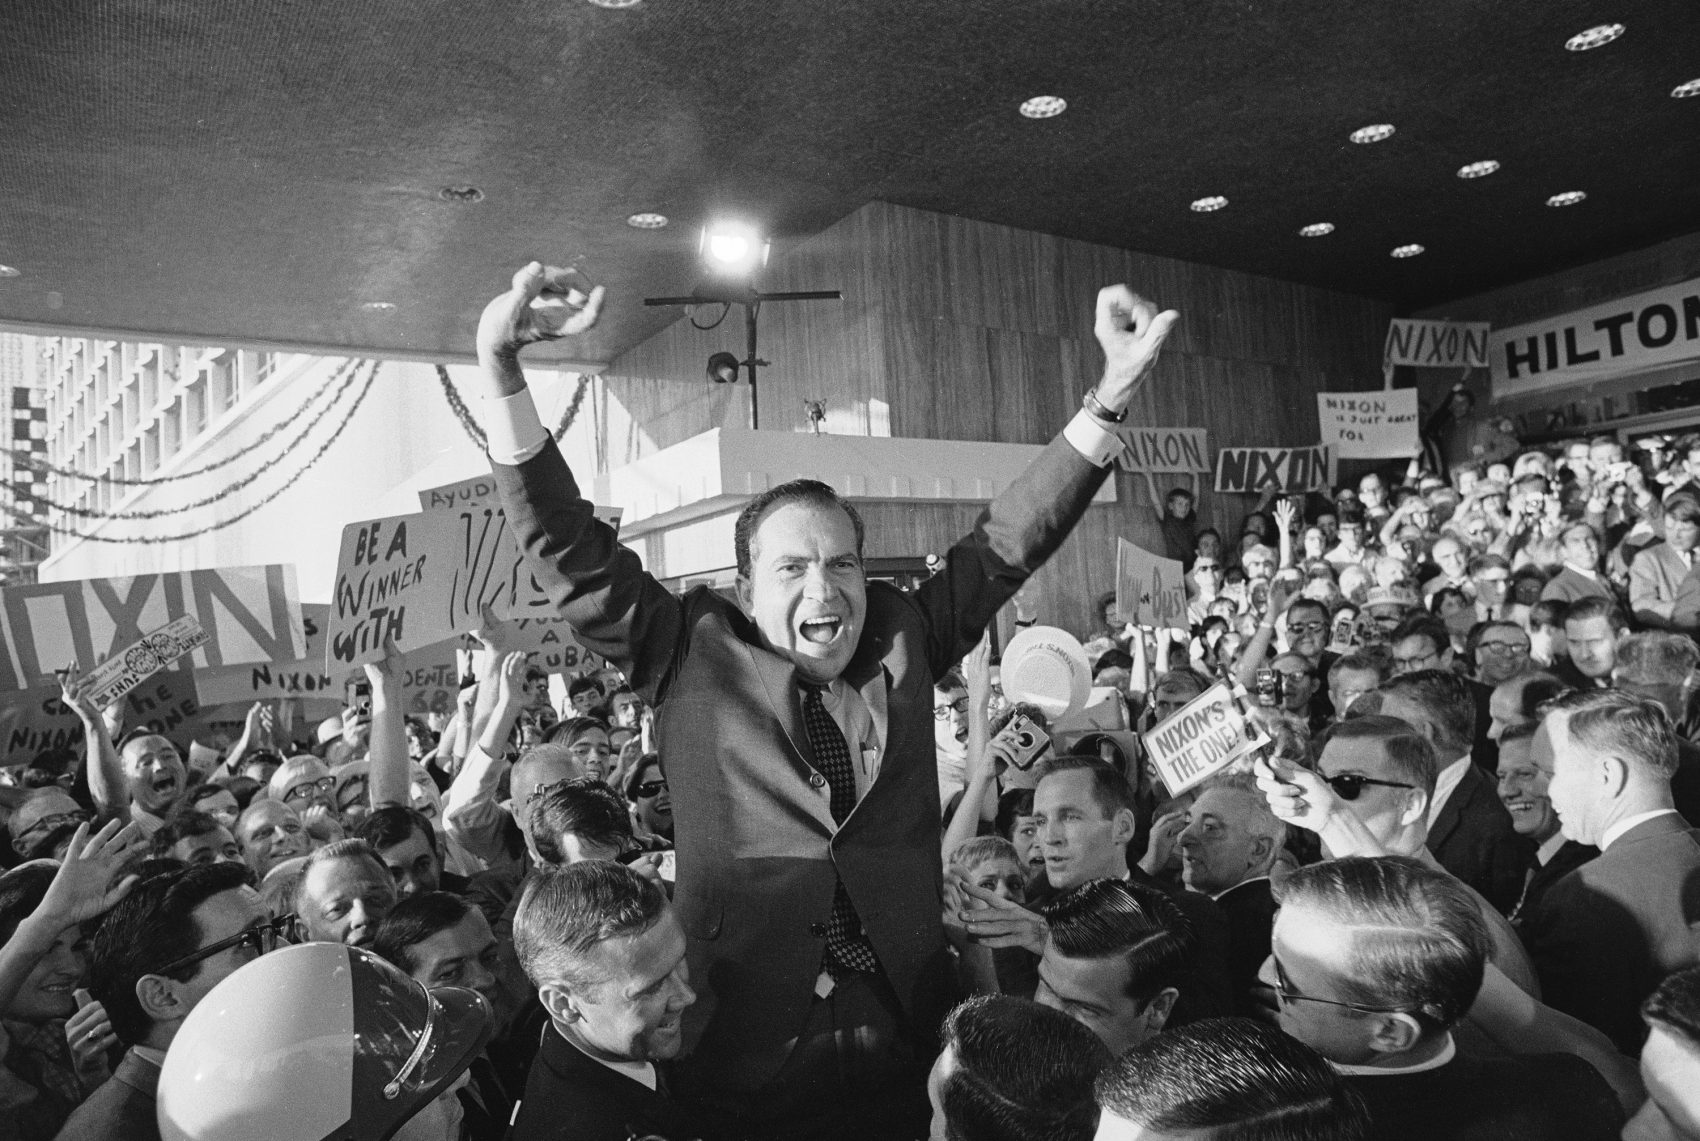 Richard Nixon makes his first public appearance at the Republican National Convention in Miami Beach on Aug. 5, 1968. (AP Photo)